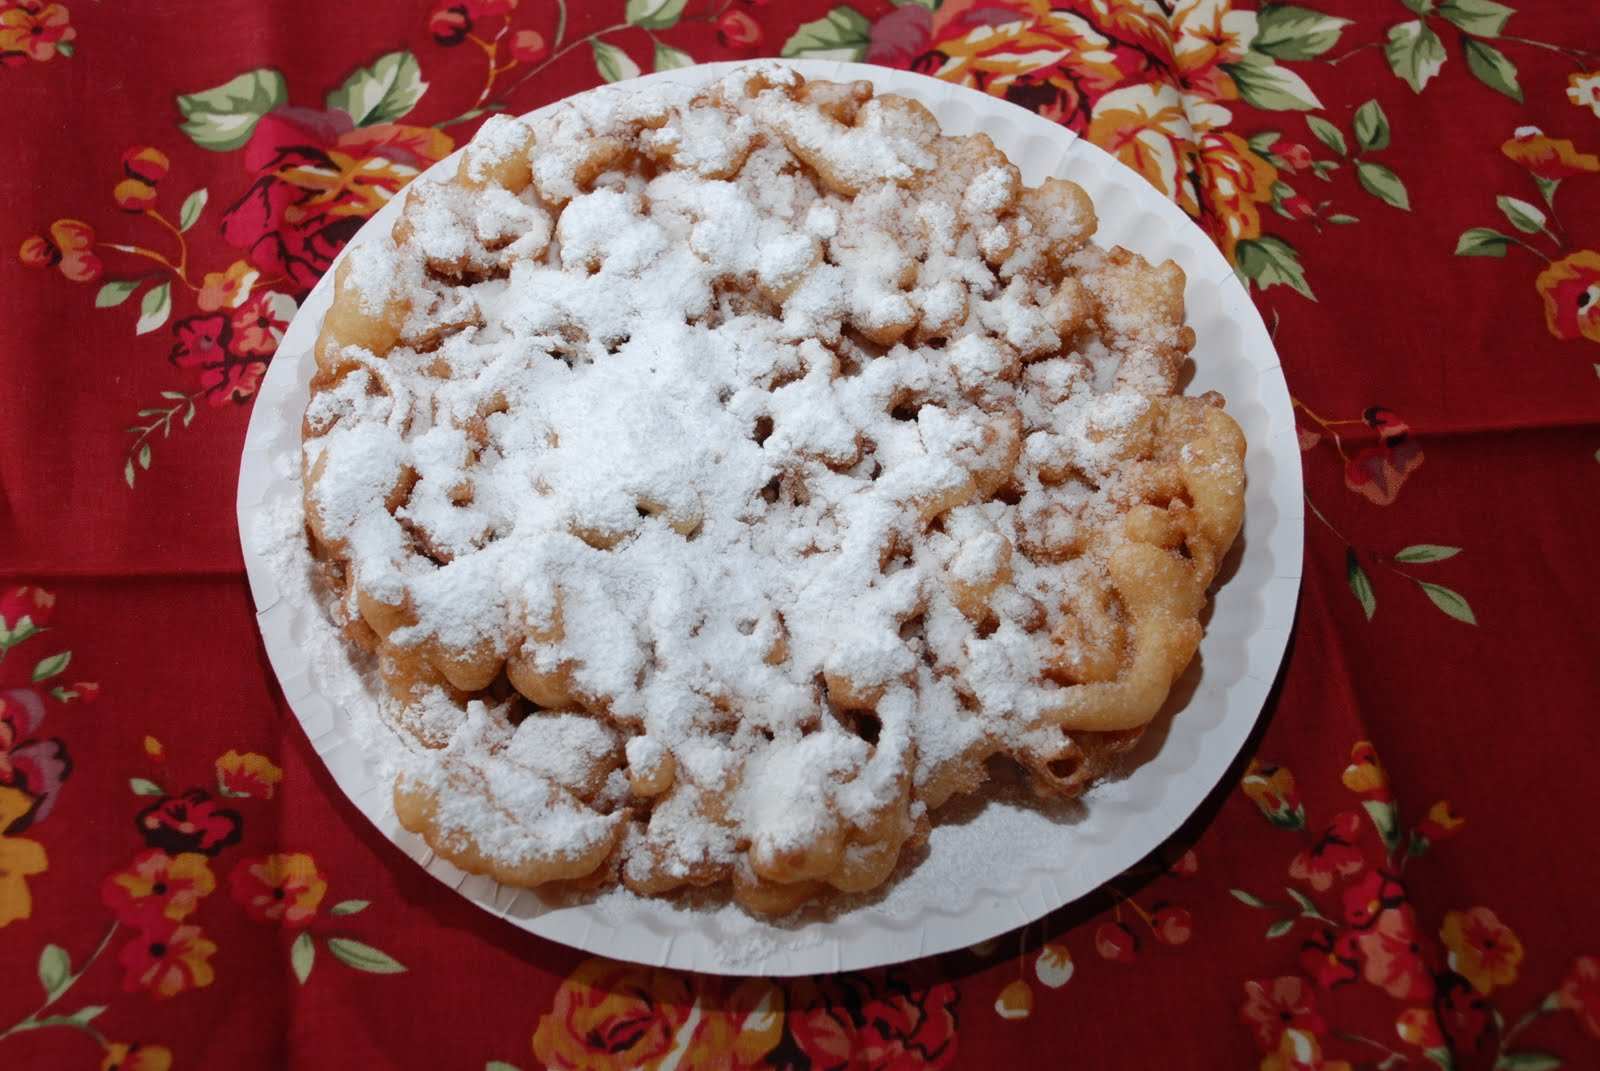 Fun Food For Thought: Where did Funnel Cakes come from?